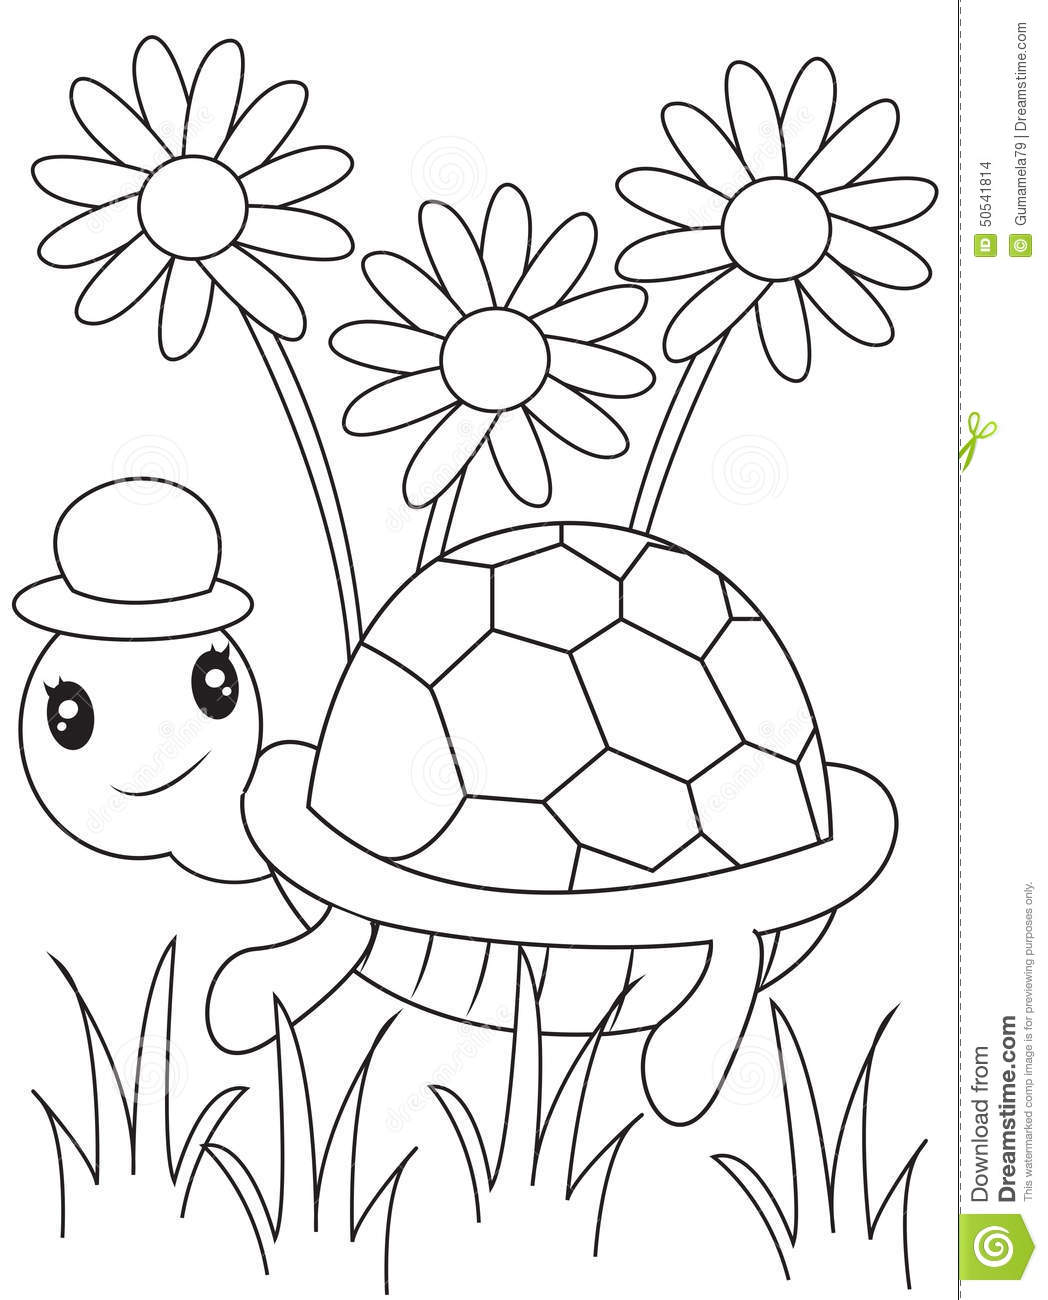 Abstract Turtle Coloring Pages : Turtle coloring page stock illustration image